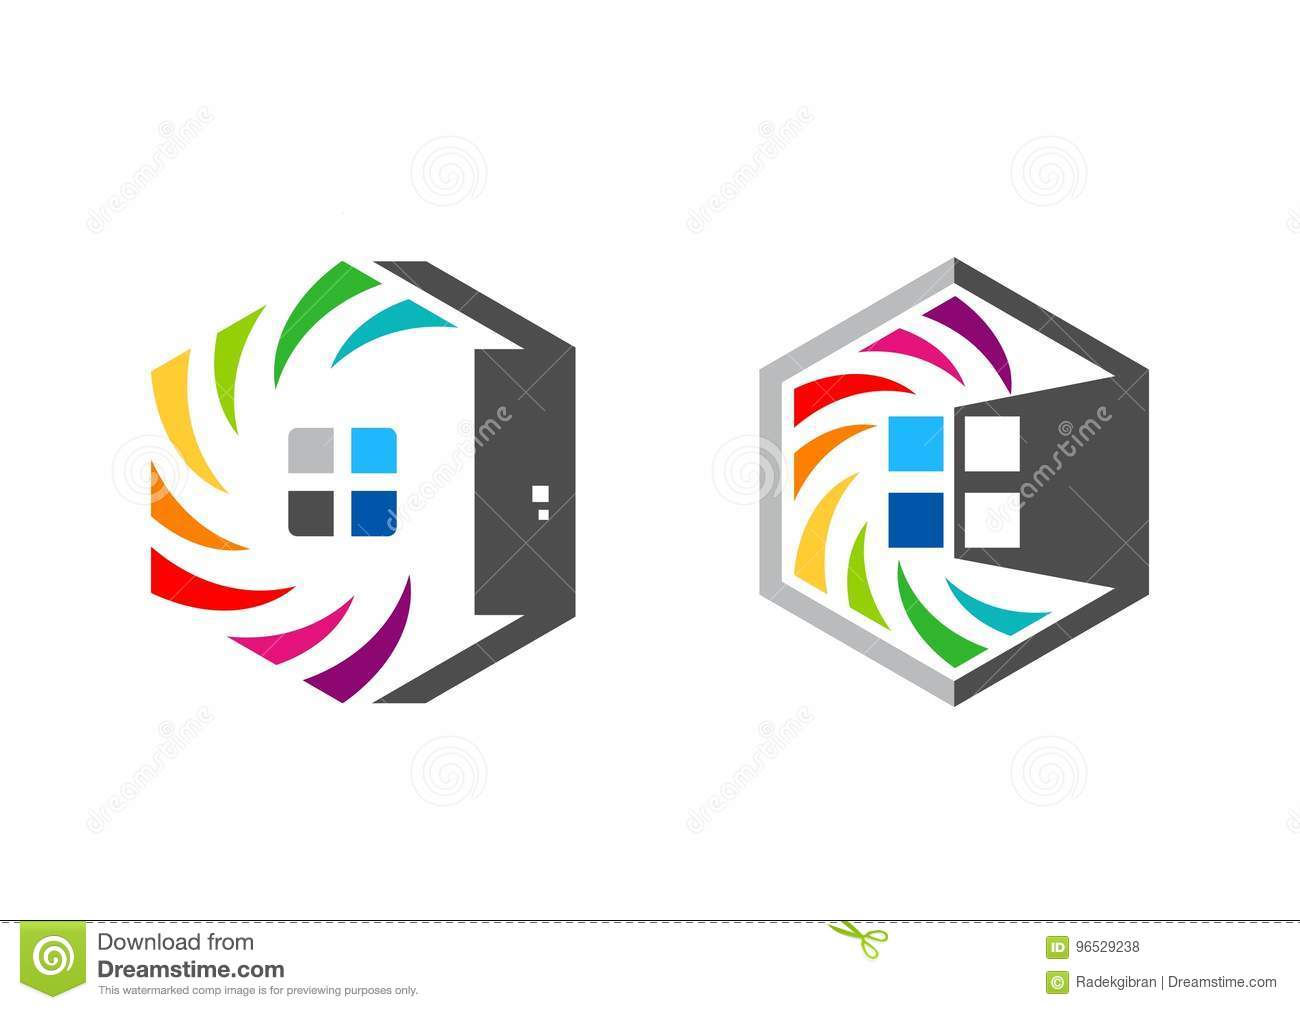 House real estate hexagon home logo set of rainbow colorize house real estate hexagon home logo set of rainbow colorize building symbol icon vector design biocorpaavc Image collections